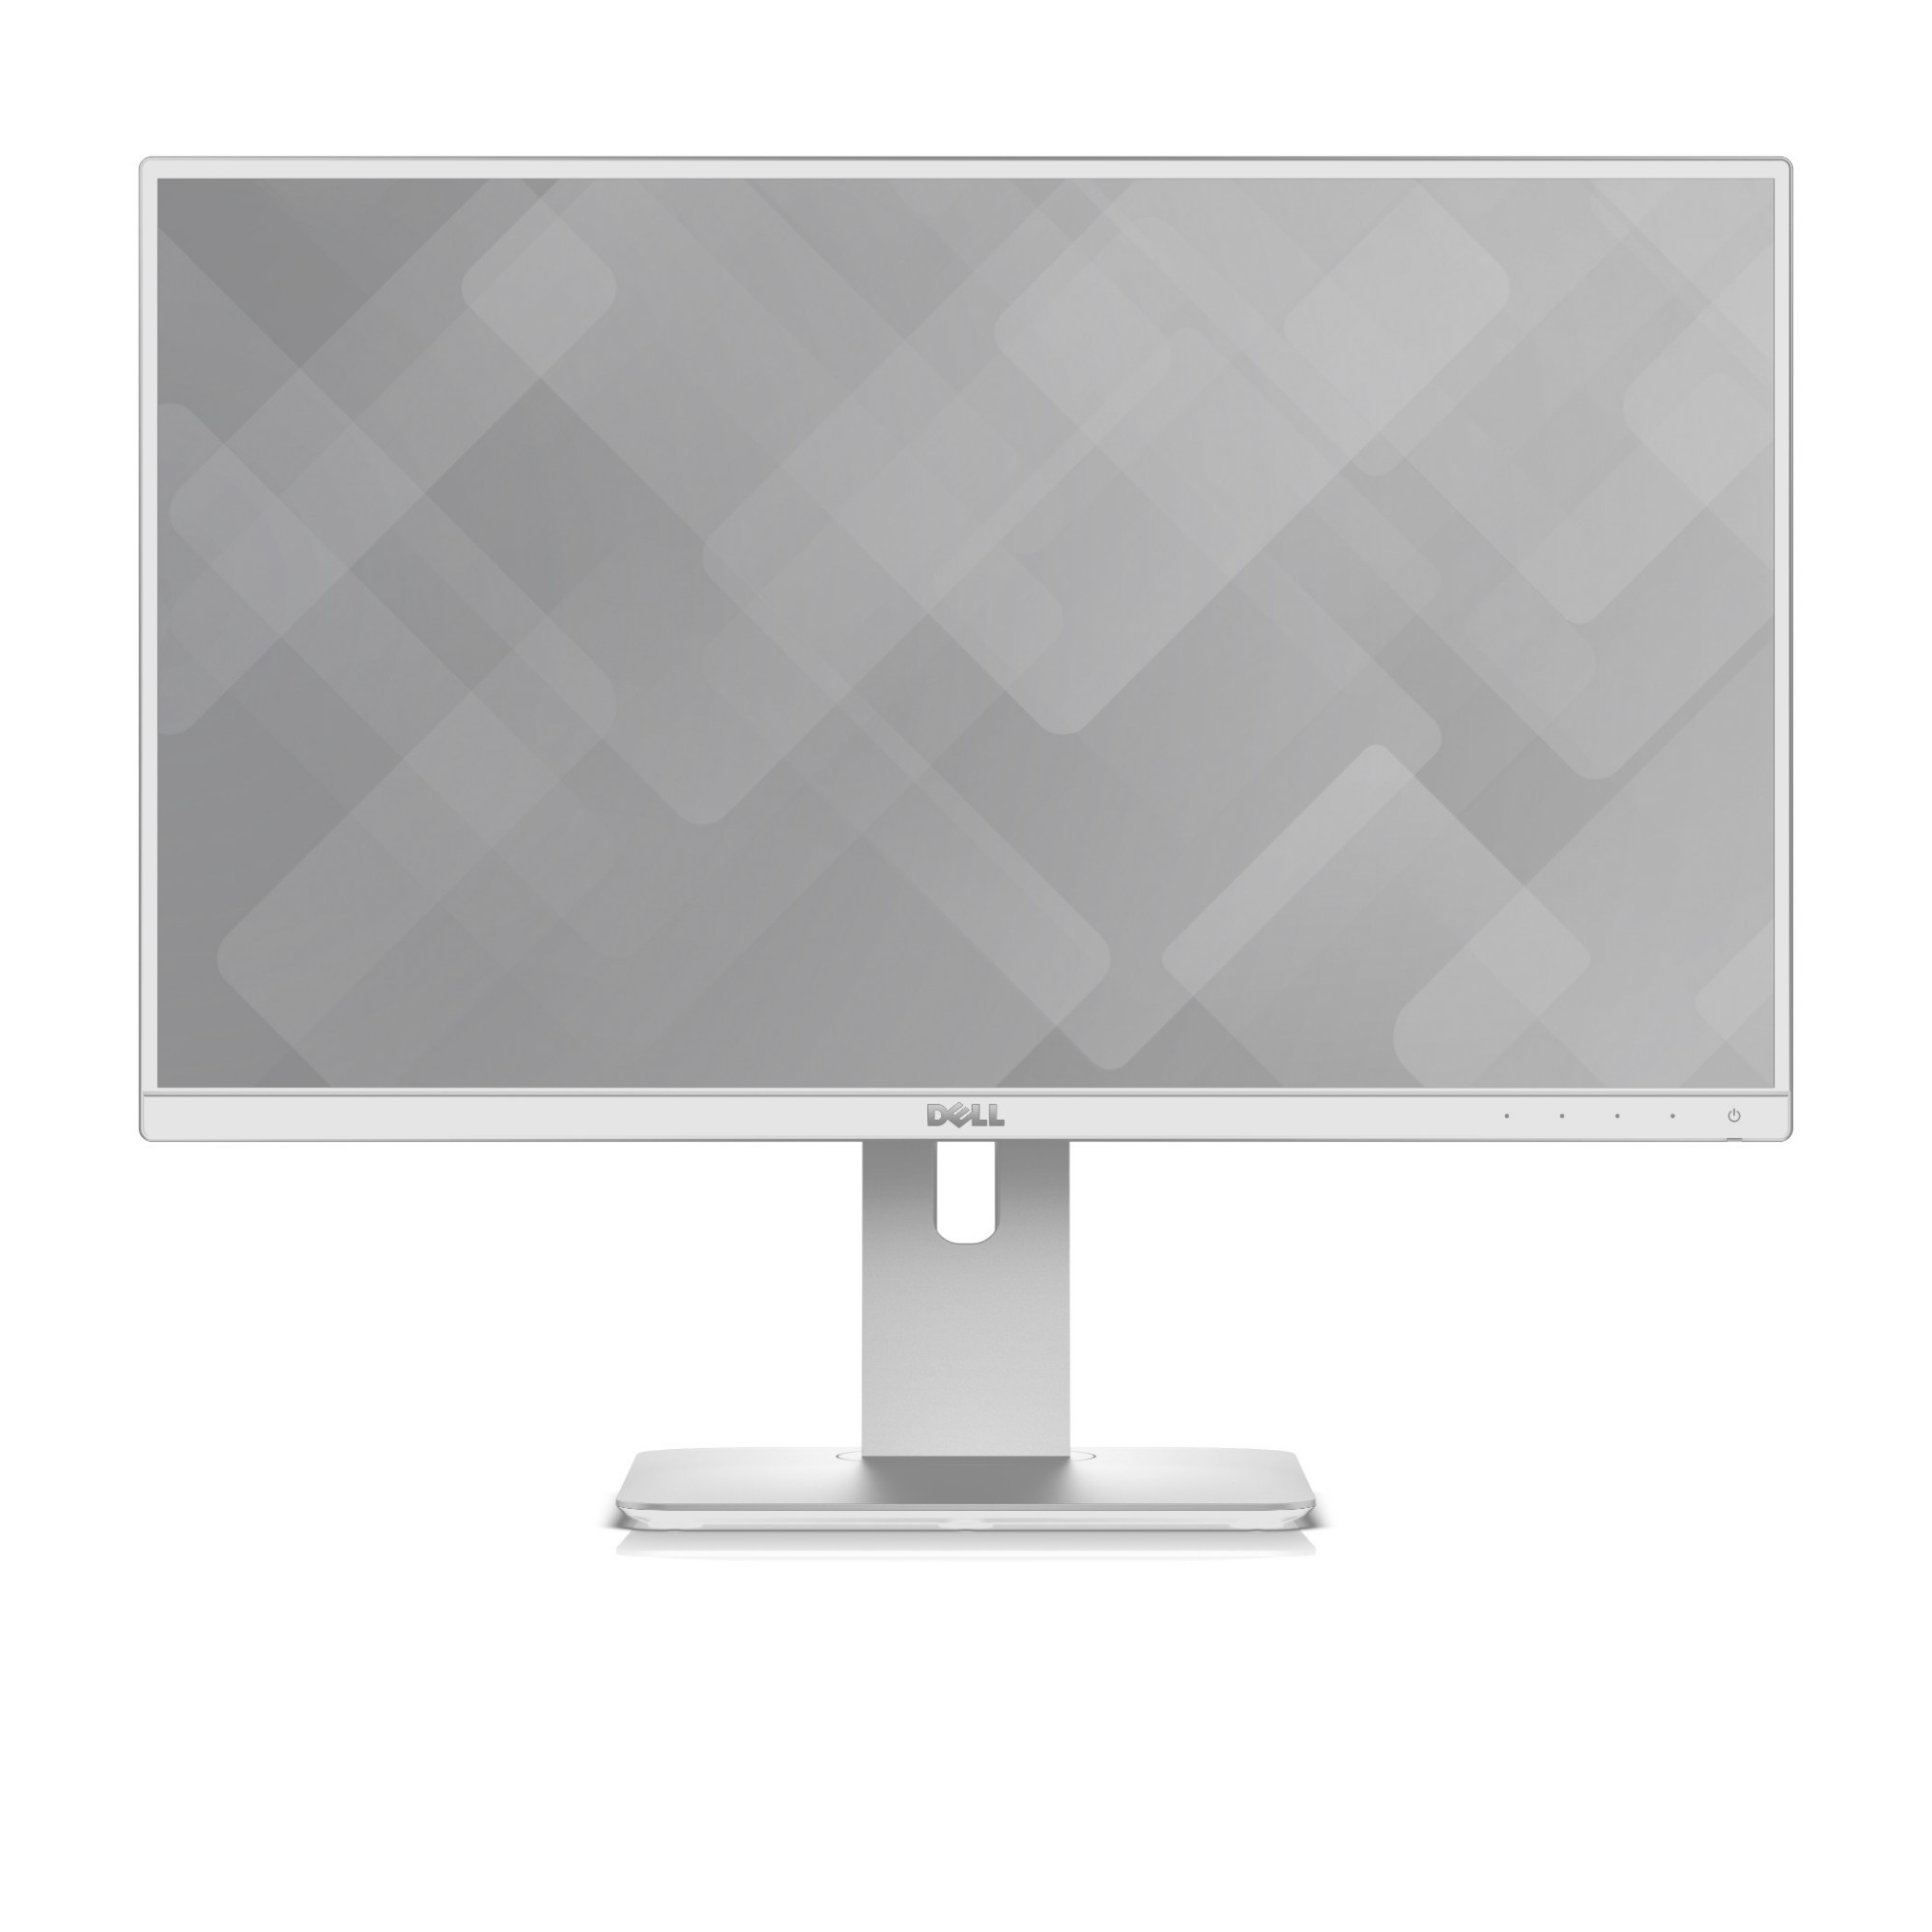 AnthonyVN: ASUS VX238H-W White 23 Inch LCD Monitor Review   White Monitor